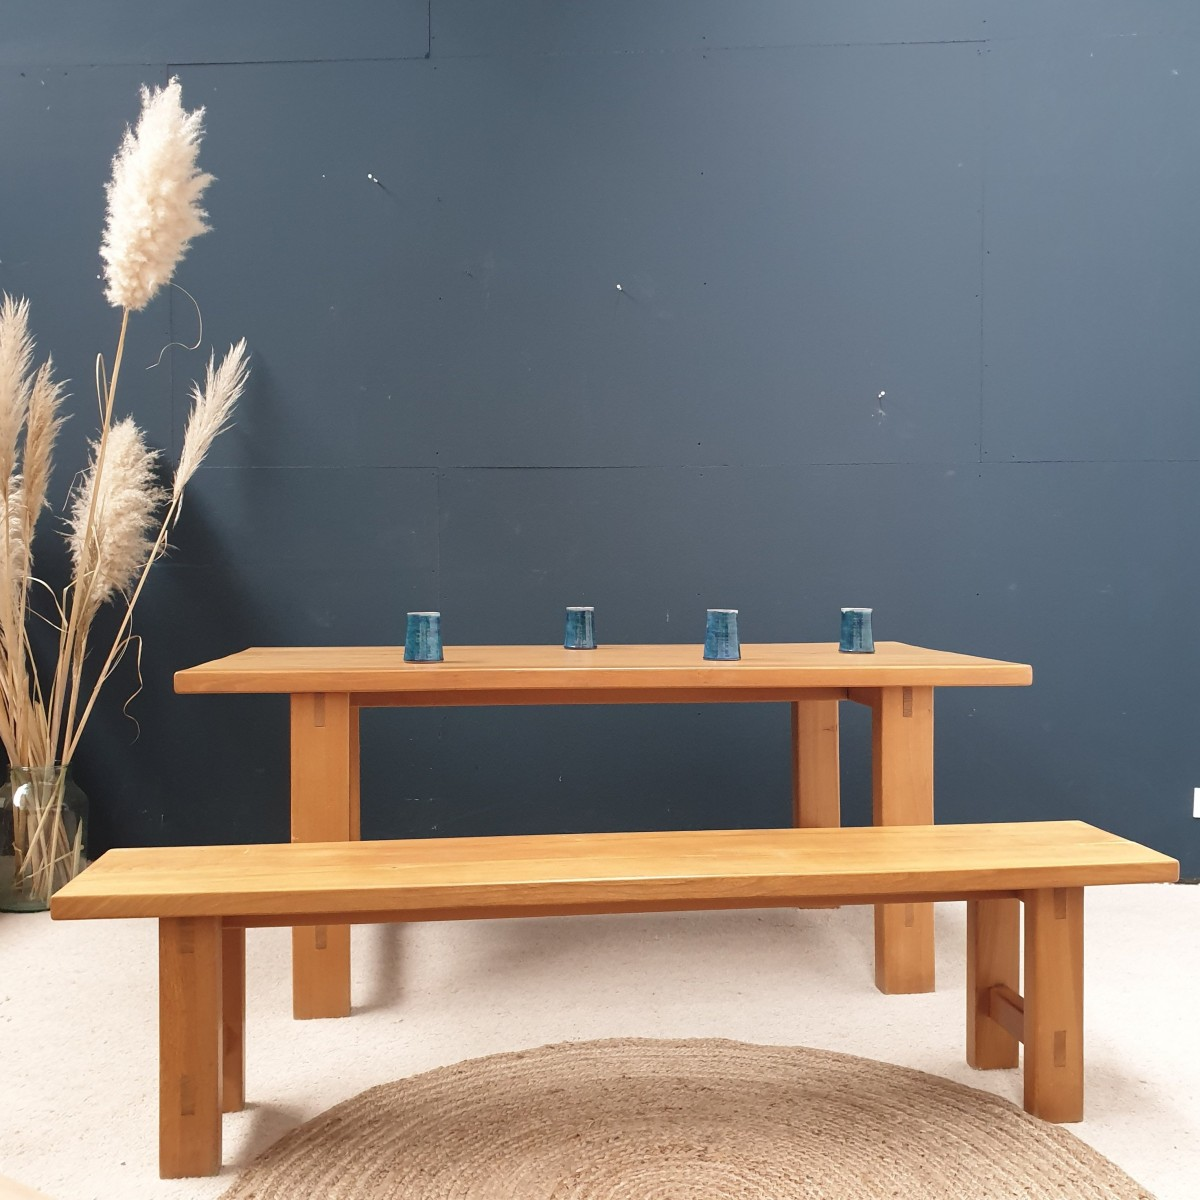 French table and the bench REGAIN éditions